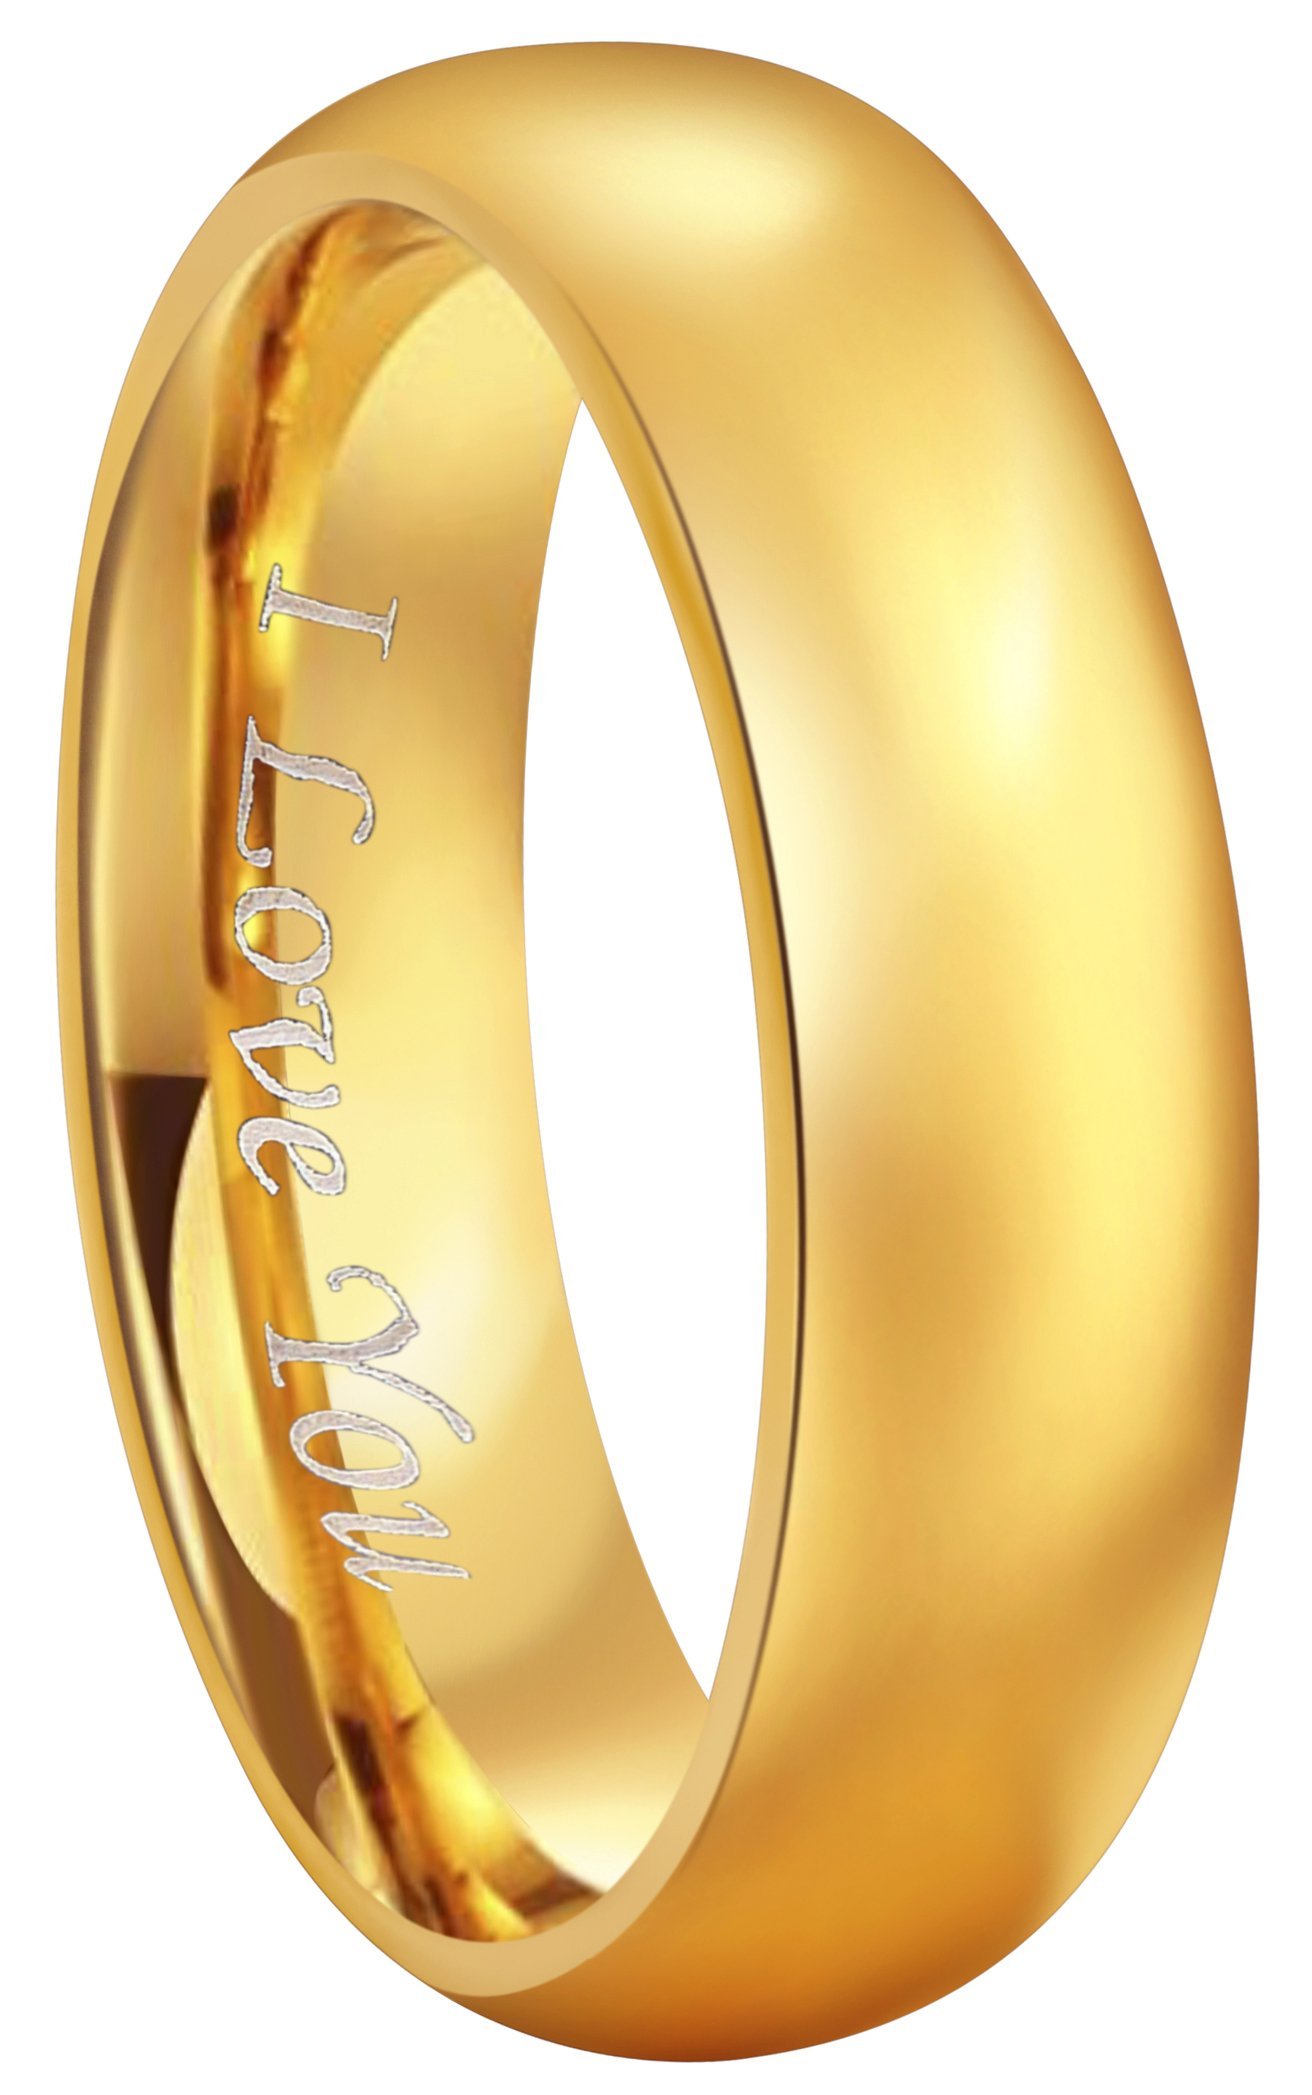 CROWNAL 4mm 6mm 8mm Tungsten Wedding Couple Bands Rings Men Women 24K Gold Plated Plain Dome Polished Engraved I Love You Size 4 To 17 (6mm,9.5)